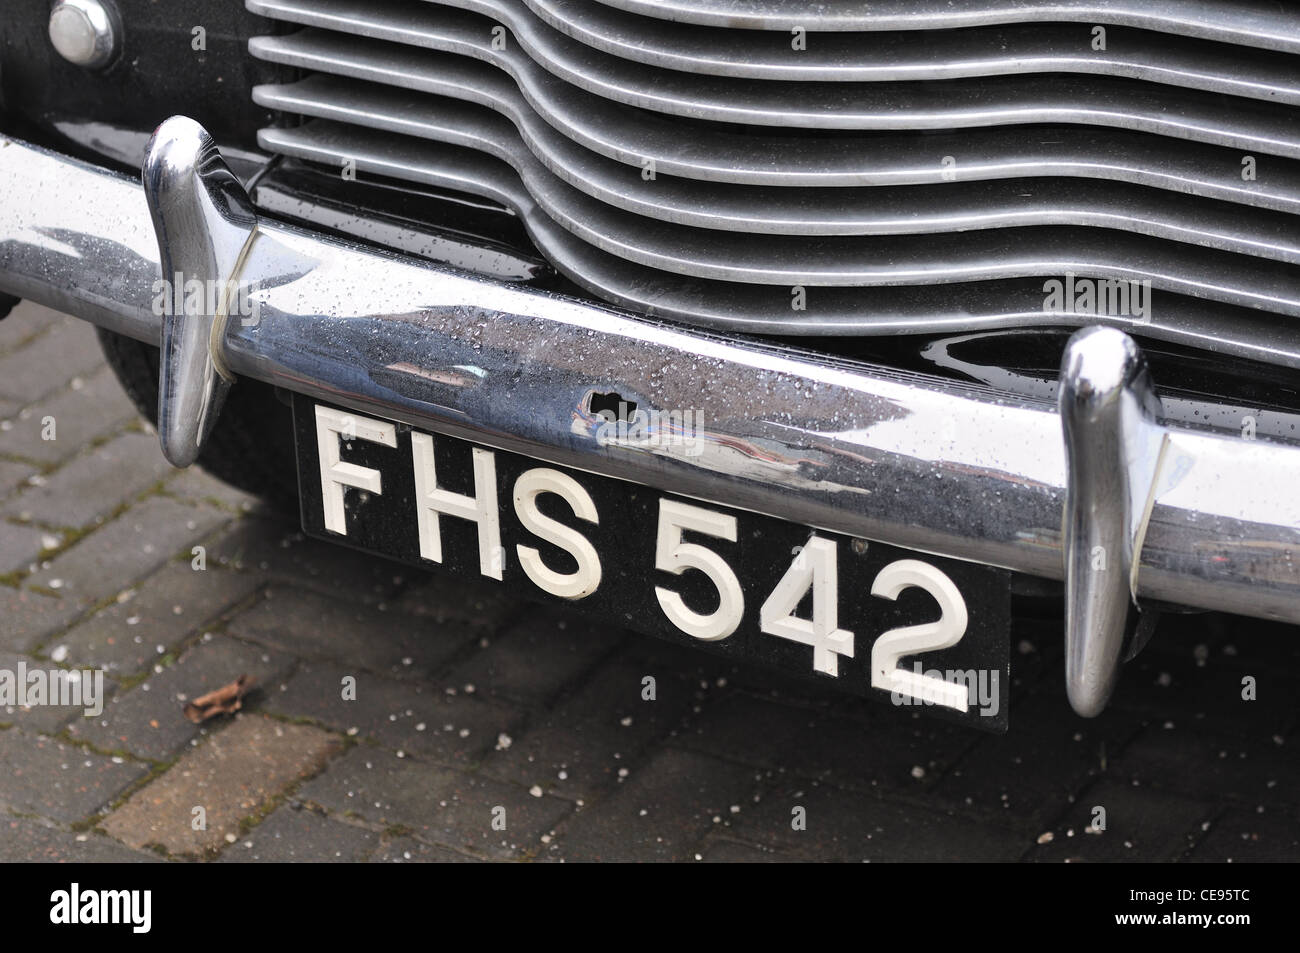 Old British classic car front chrome bumper and black and white ...